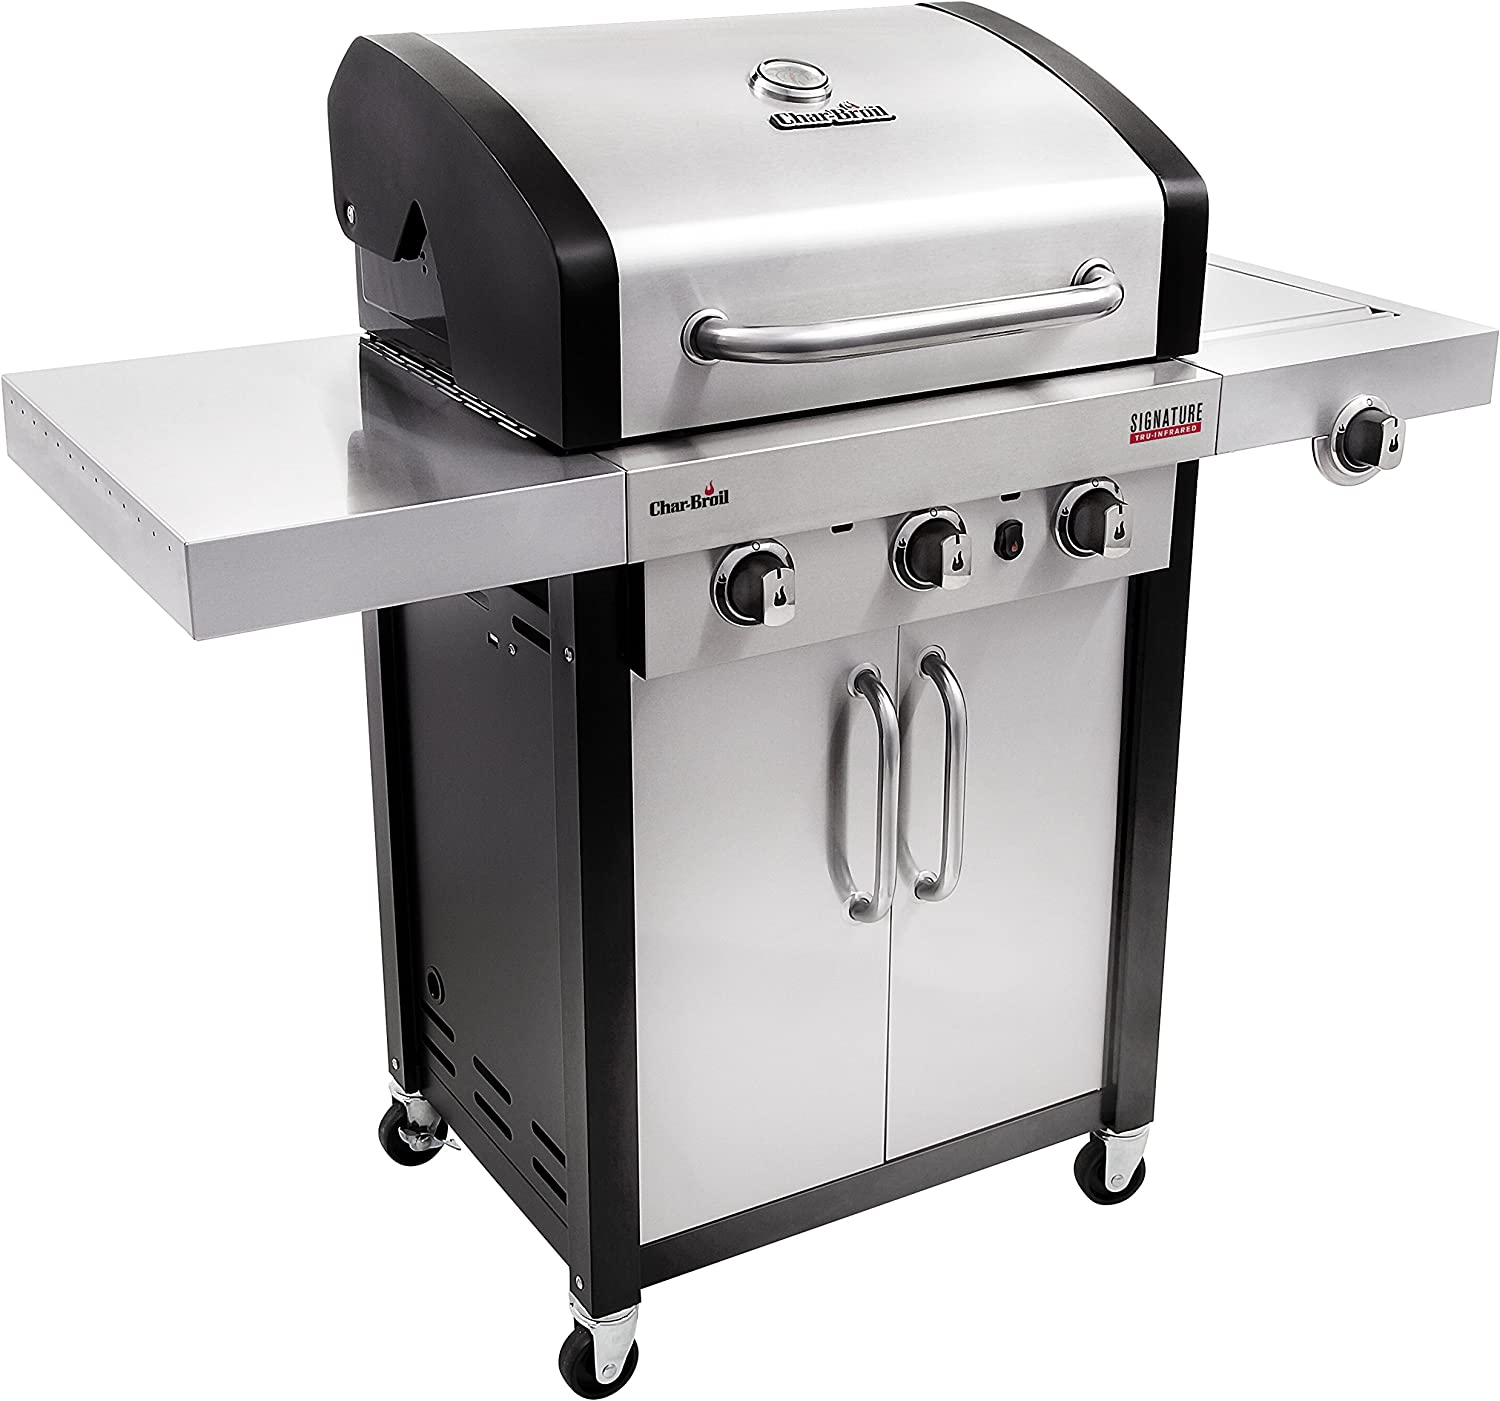 Thermos 265 2-Burner Liquid Propane Gas Grill